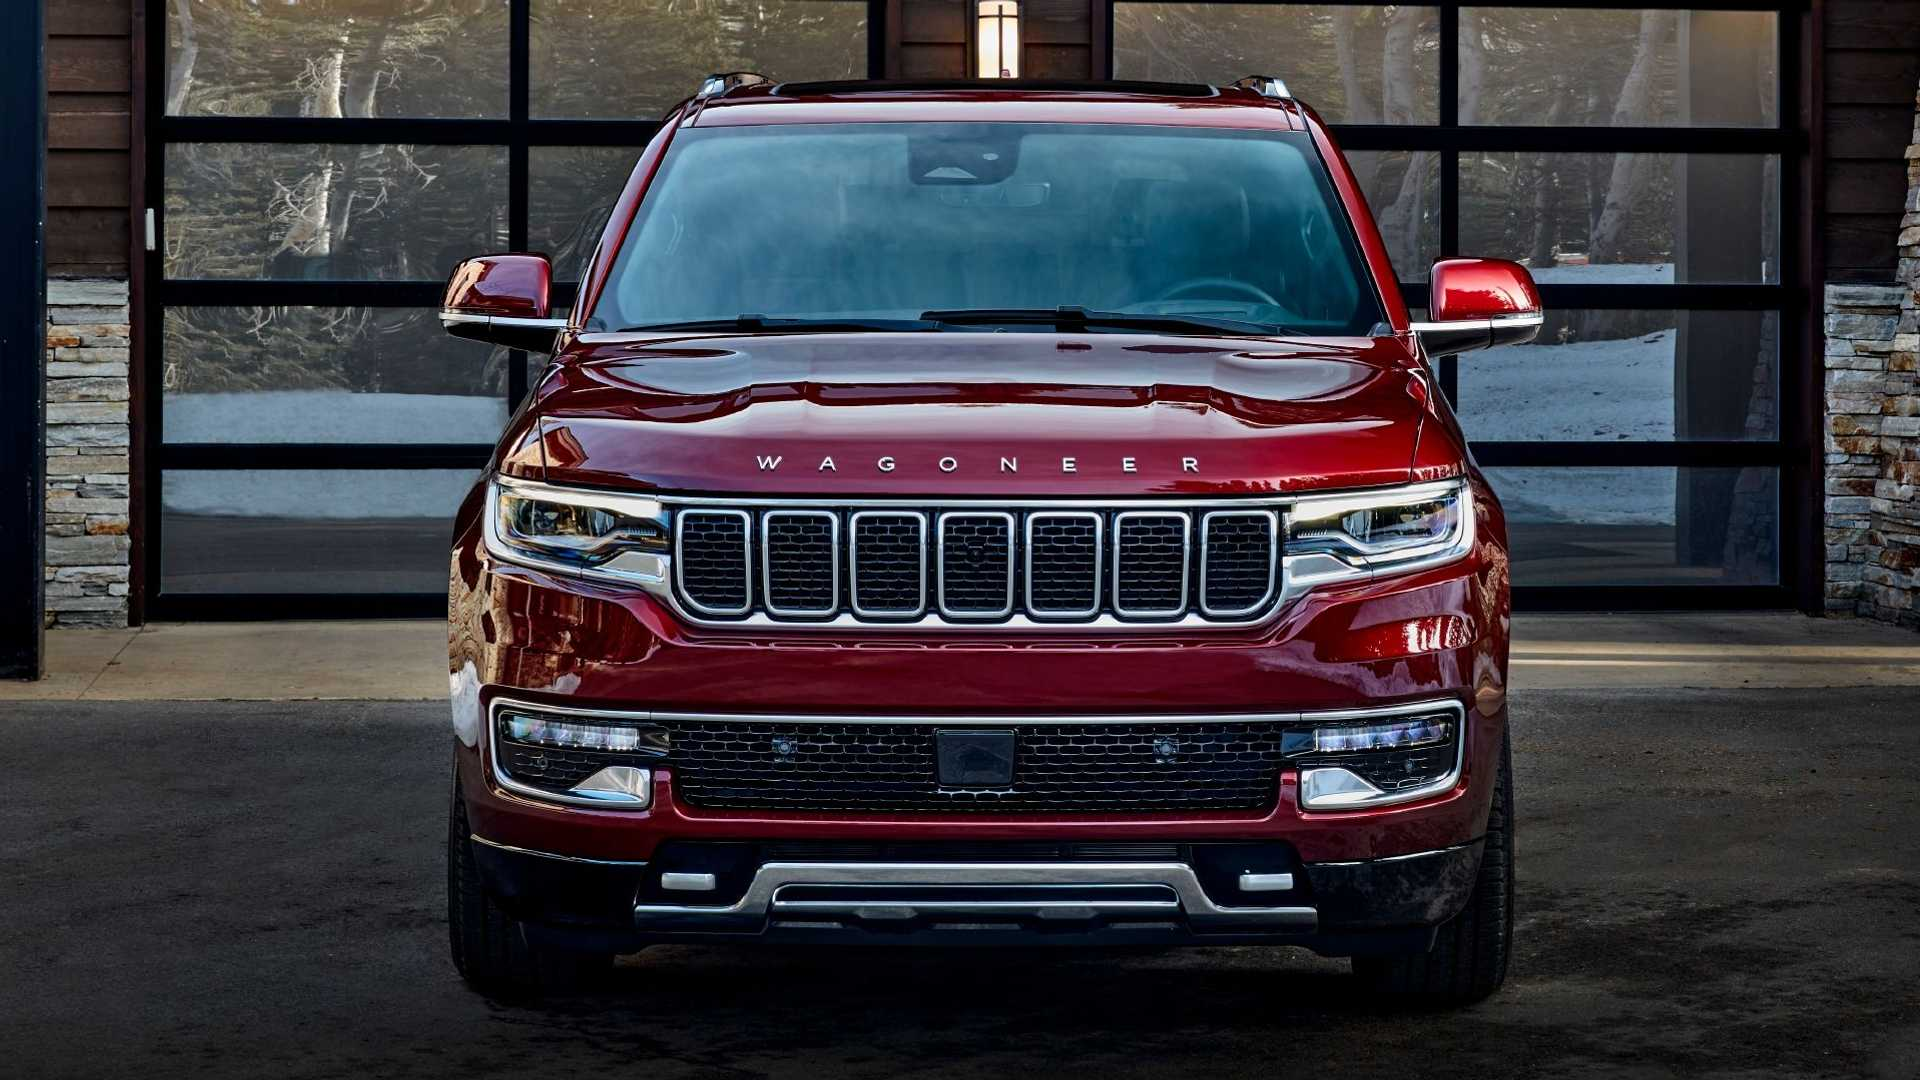 2022-jeep-wagoneer-exterior-front-view